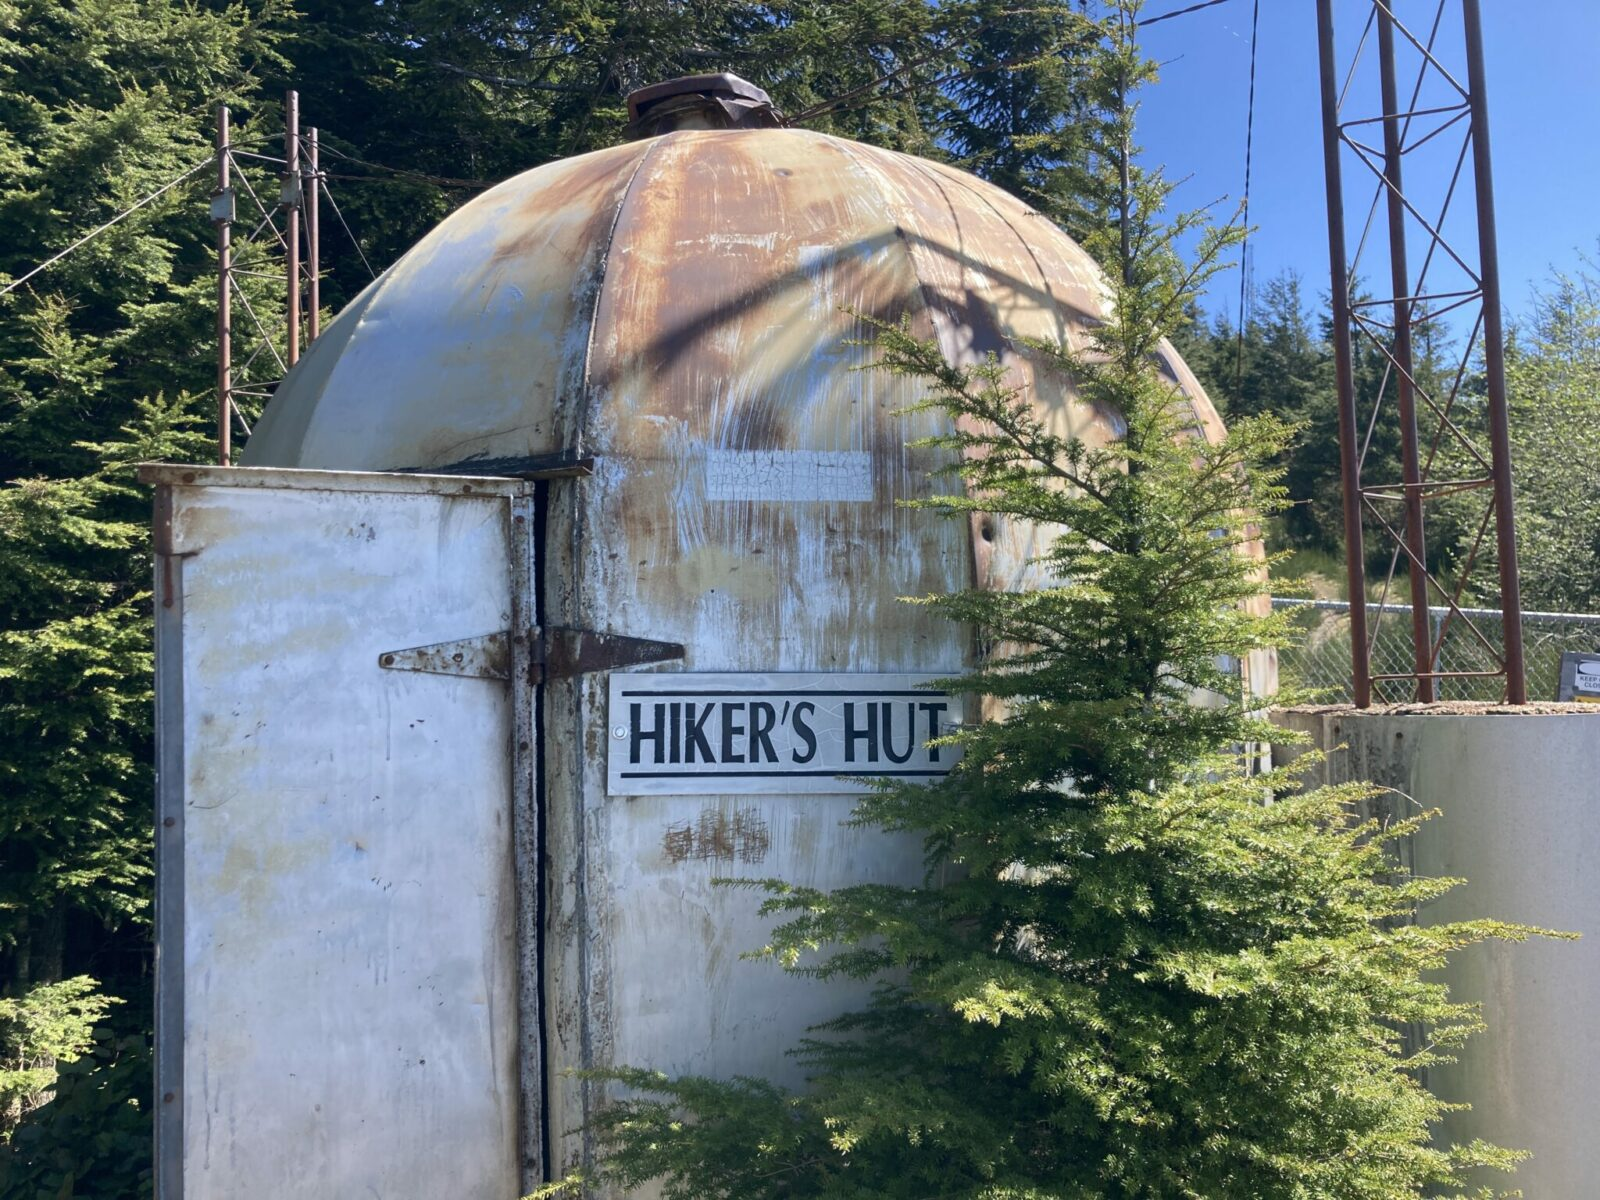 A small white painted metal building with rust on the roof has a sign that says Hiker's Hut and an open door on West Tiger Mountain 1. There is a forest around the hut and some metal poles in the background